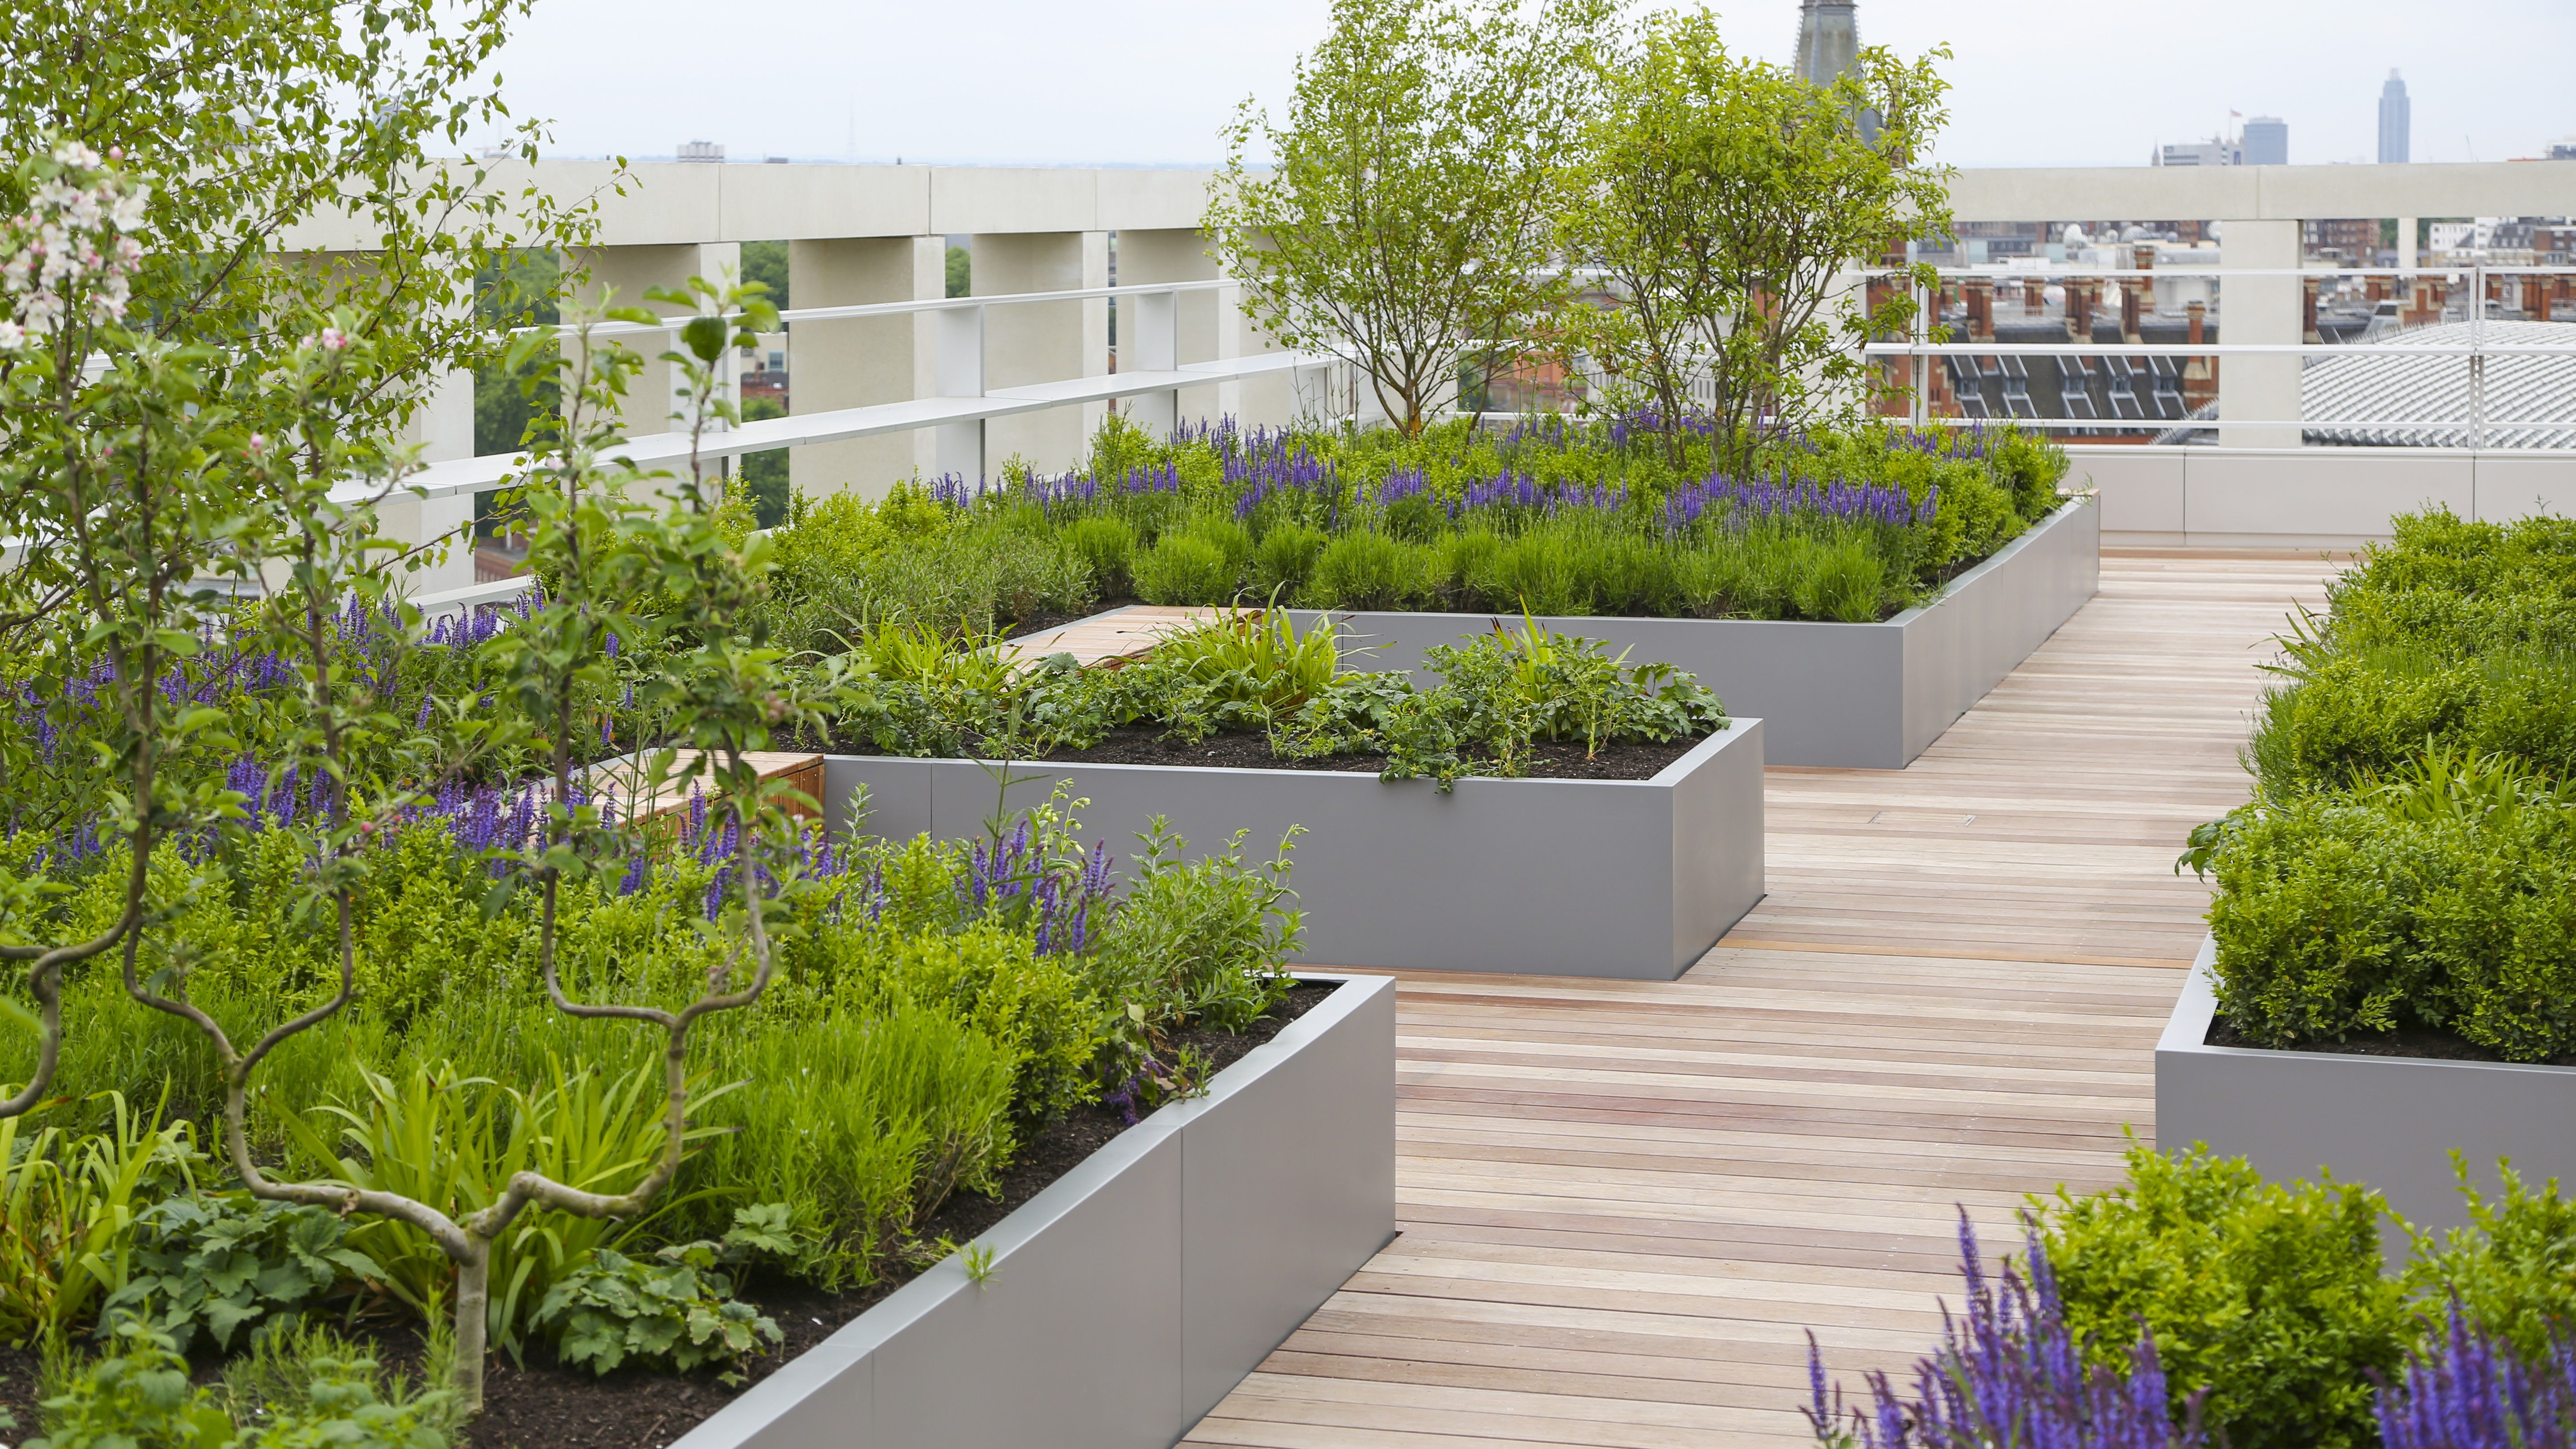 Home Europlanters British Manufacturers of GRP Planters